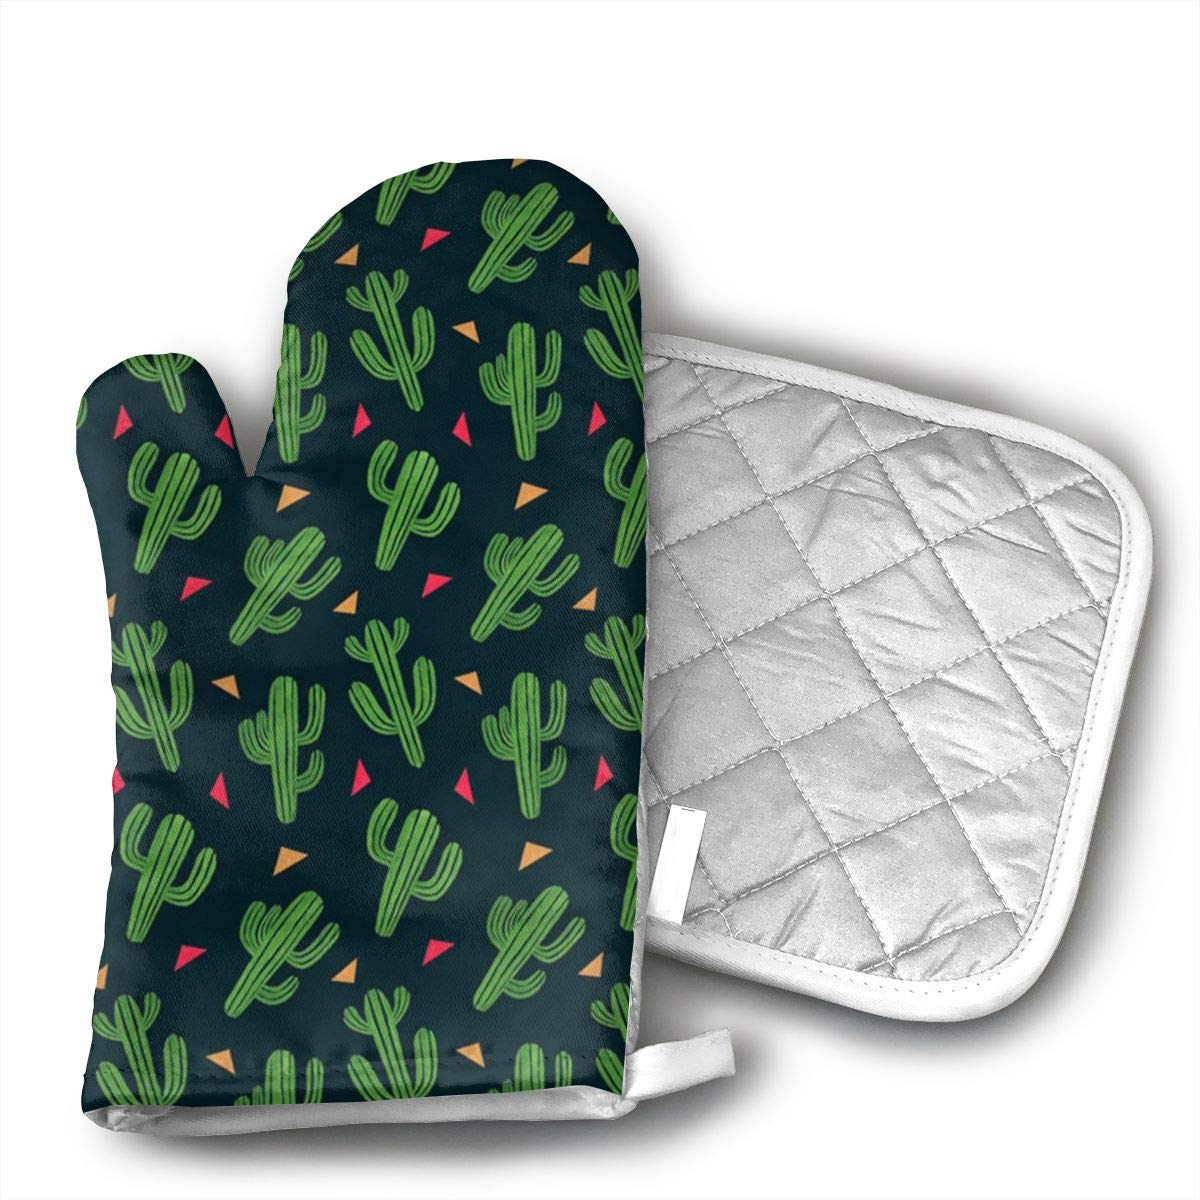 JFNNRUOP Cactus Fiesta Oven Mitts,with Potholders Oven Gloves,Insulated Quilted Cotton Potholders